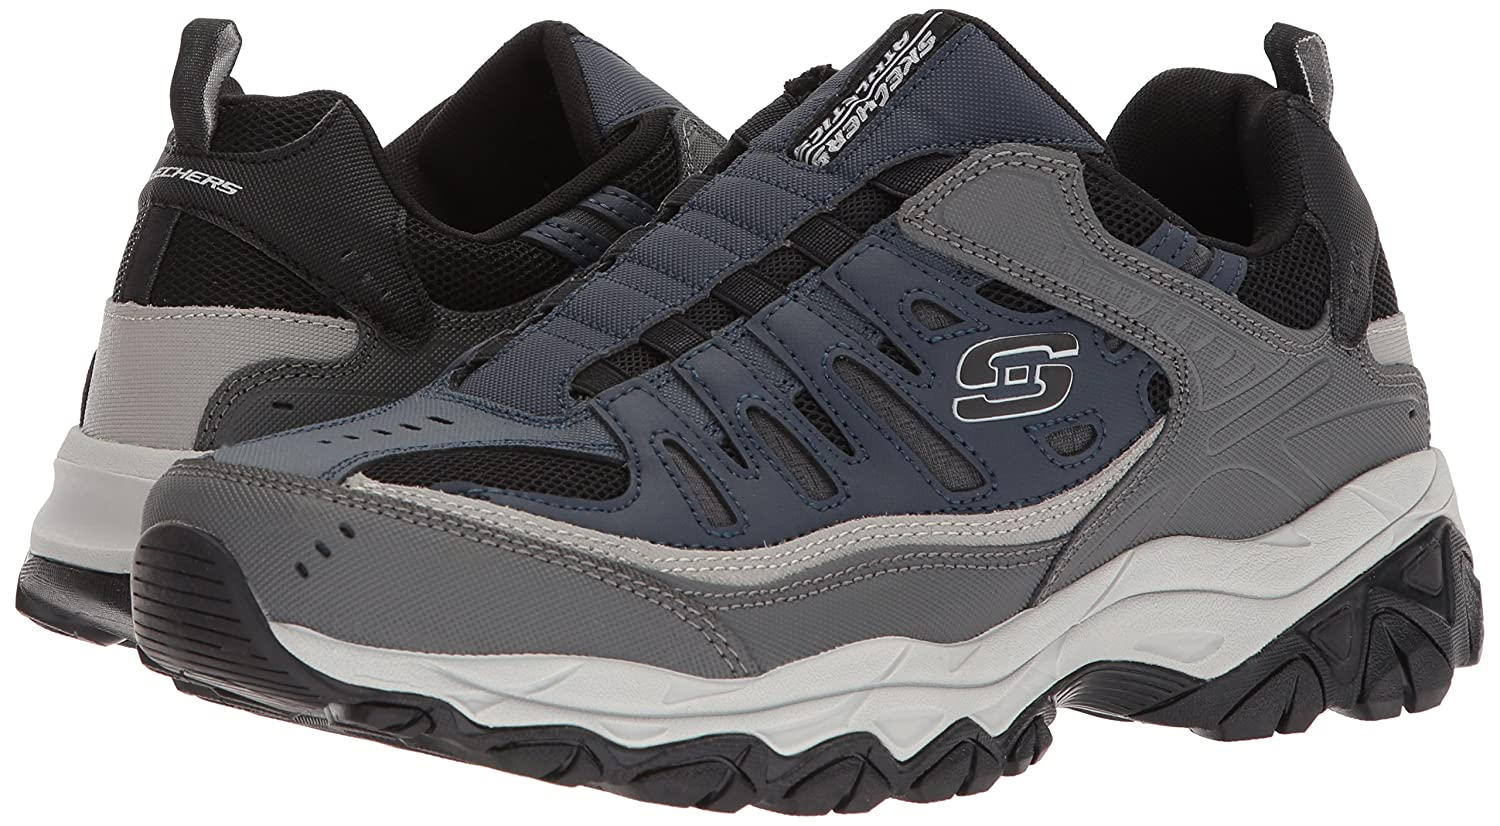 Skechers-Afterburn-Memory-Foam-M-Fit-Men-039-s-Sport-After-Burn-Sneakers-Shoes thumbnail 70